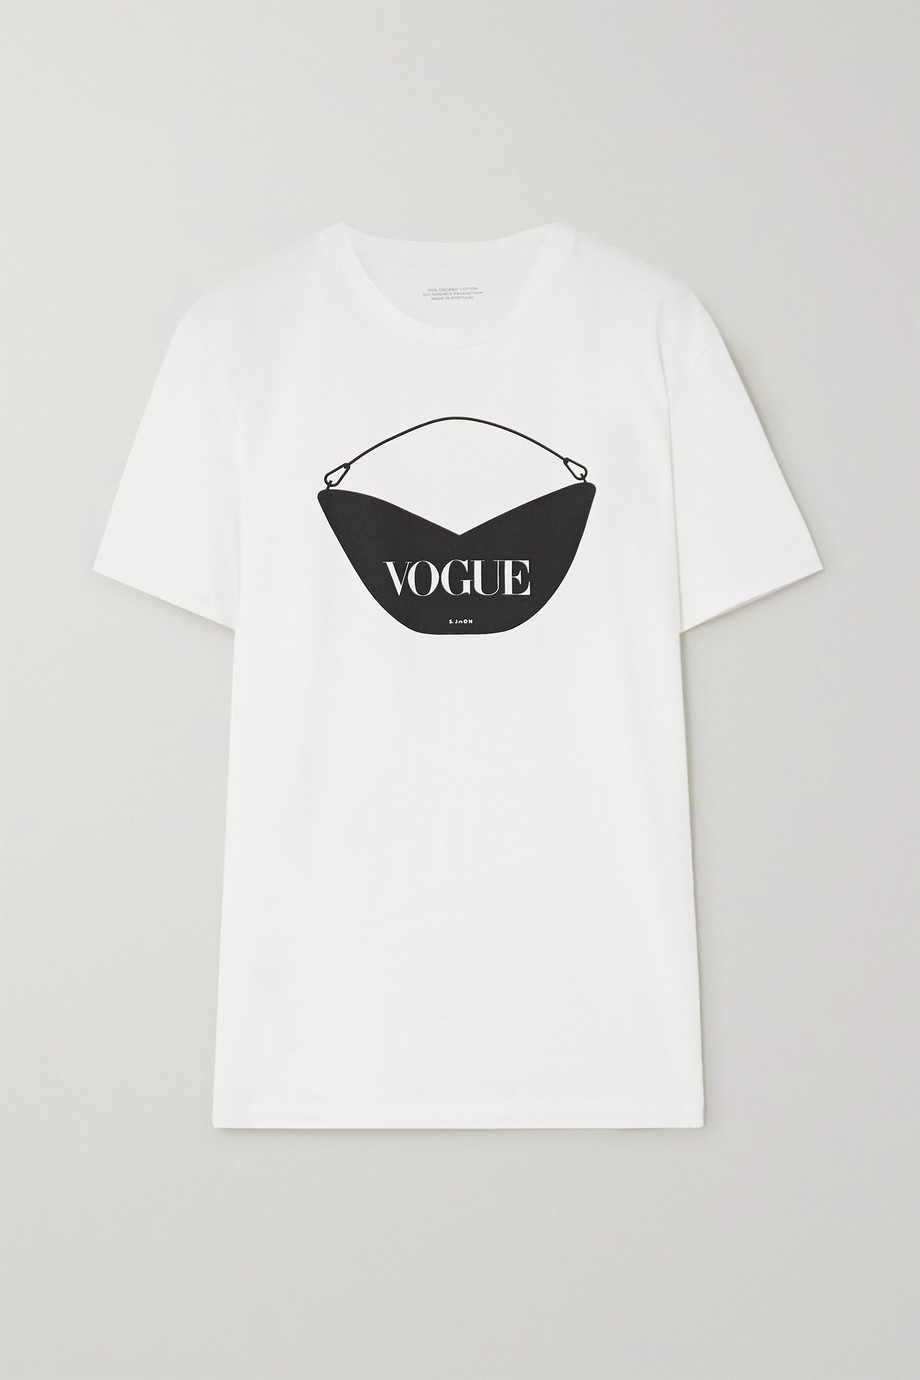 S.Joon + VOGUE printed organic cotton-jersey T-shirt